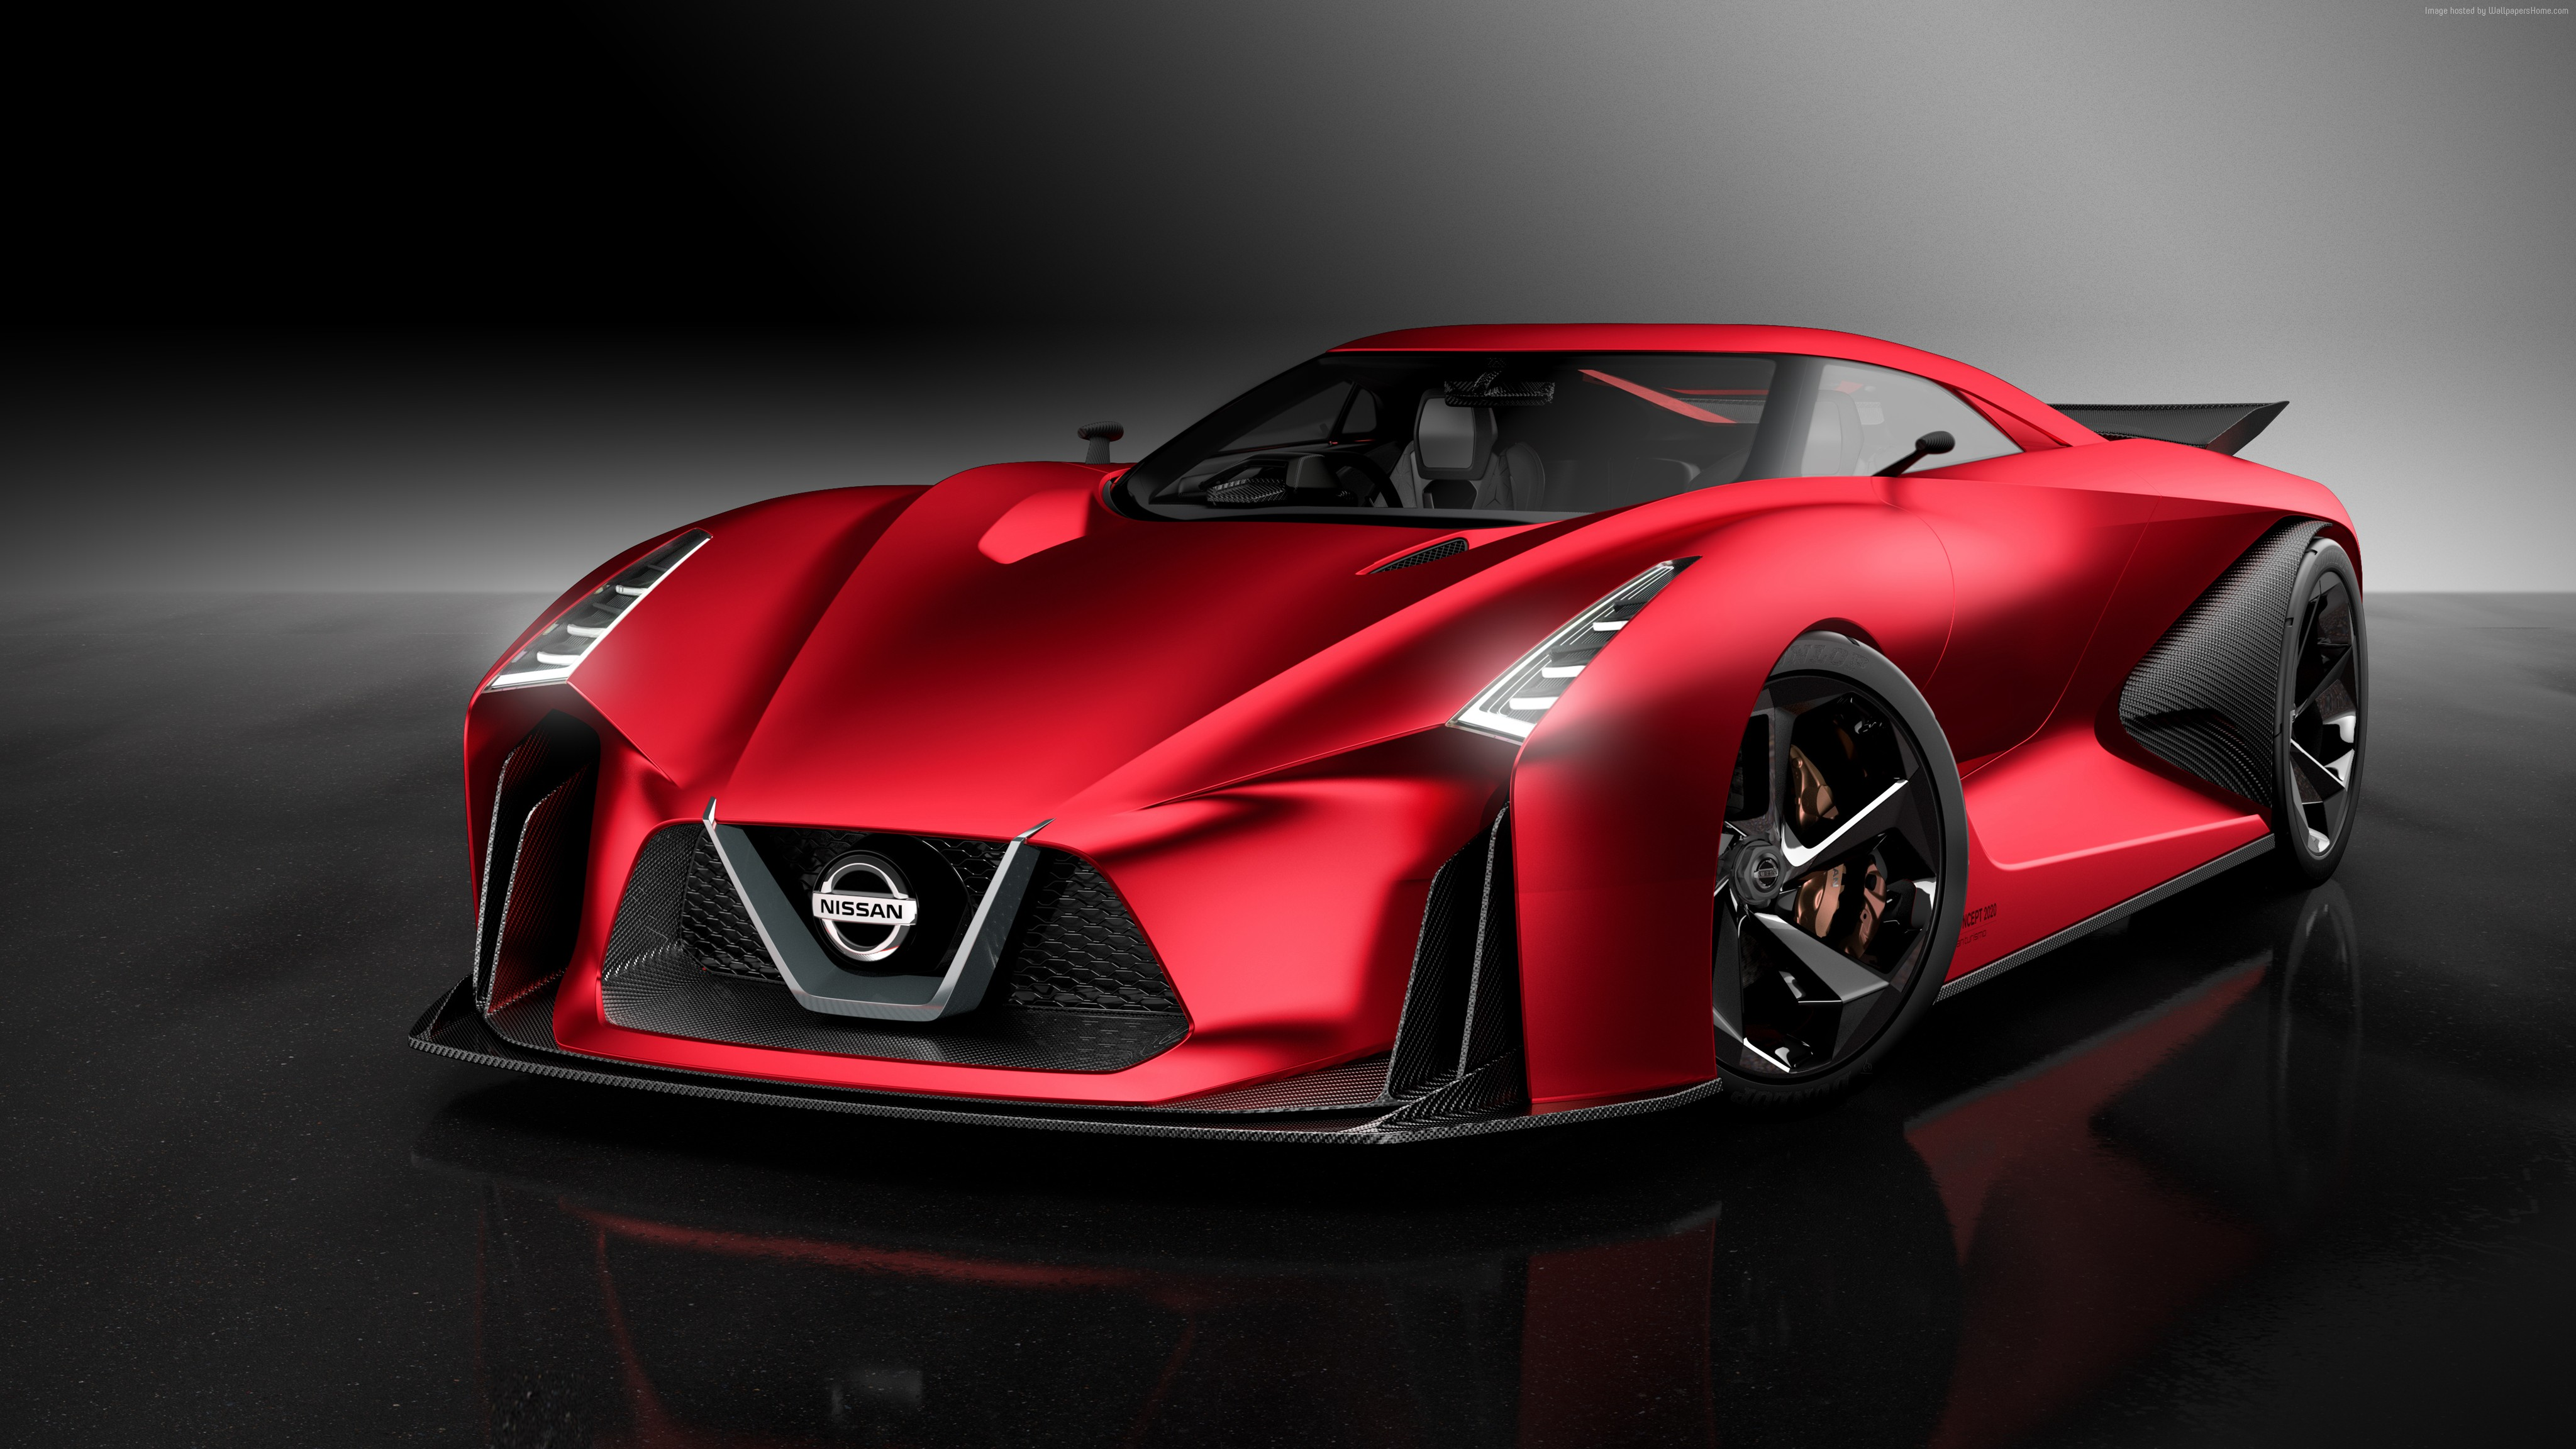 Wallpaper Nissan Vision Gran Turismo Red Concept Backgrounds Sport ...